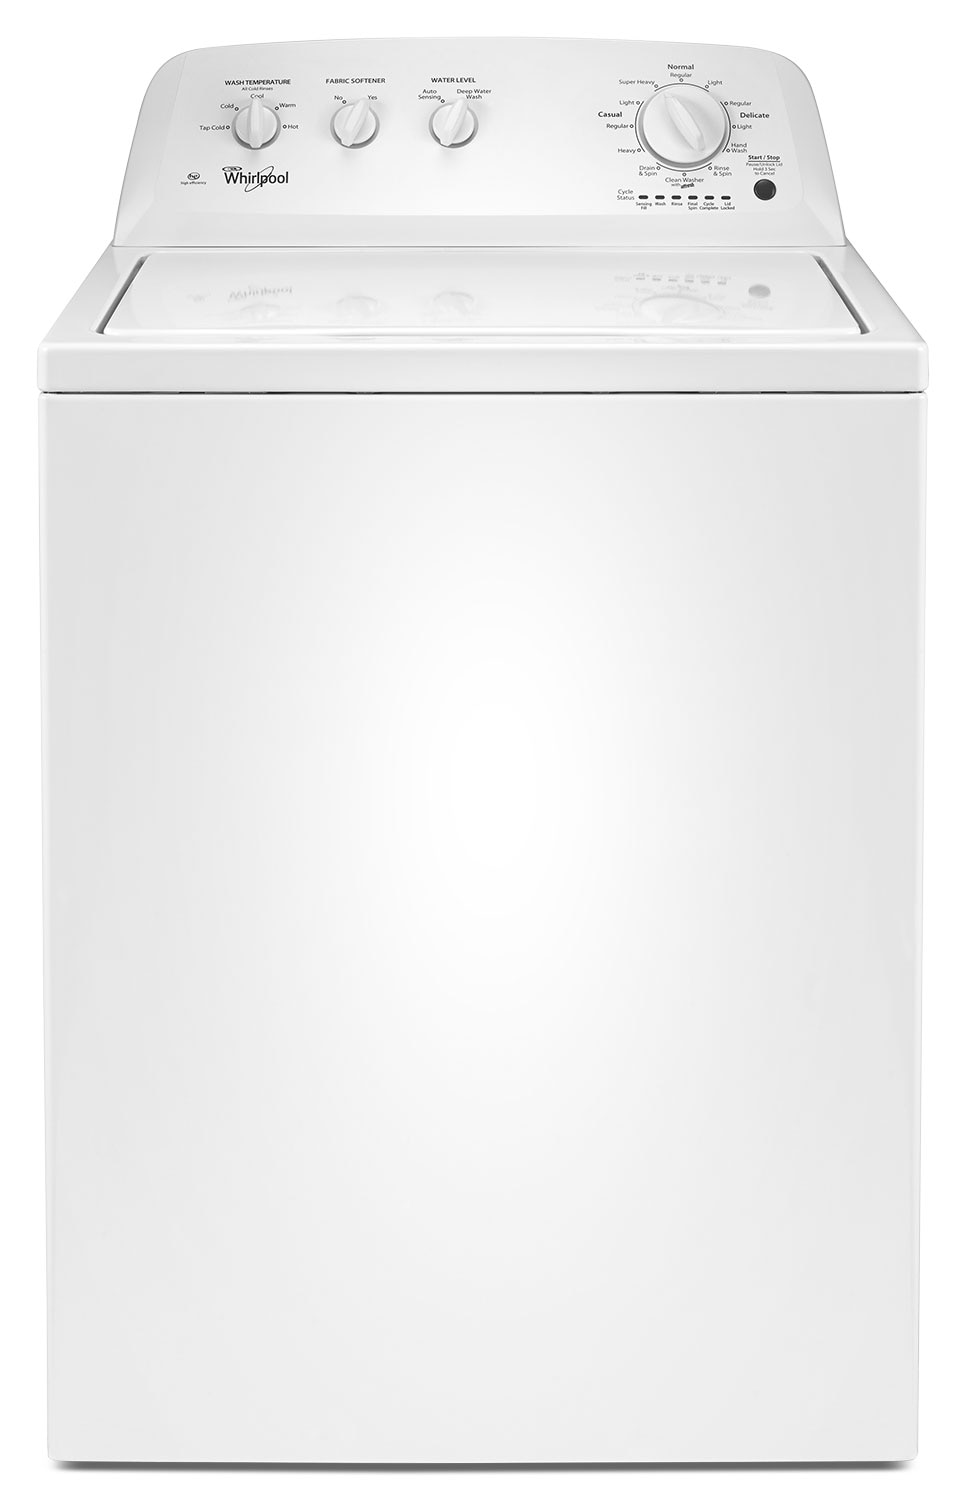 Whirlpool White Top Load Washer 4 0 Cu Ft Iec